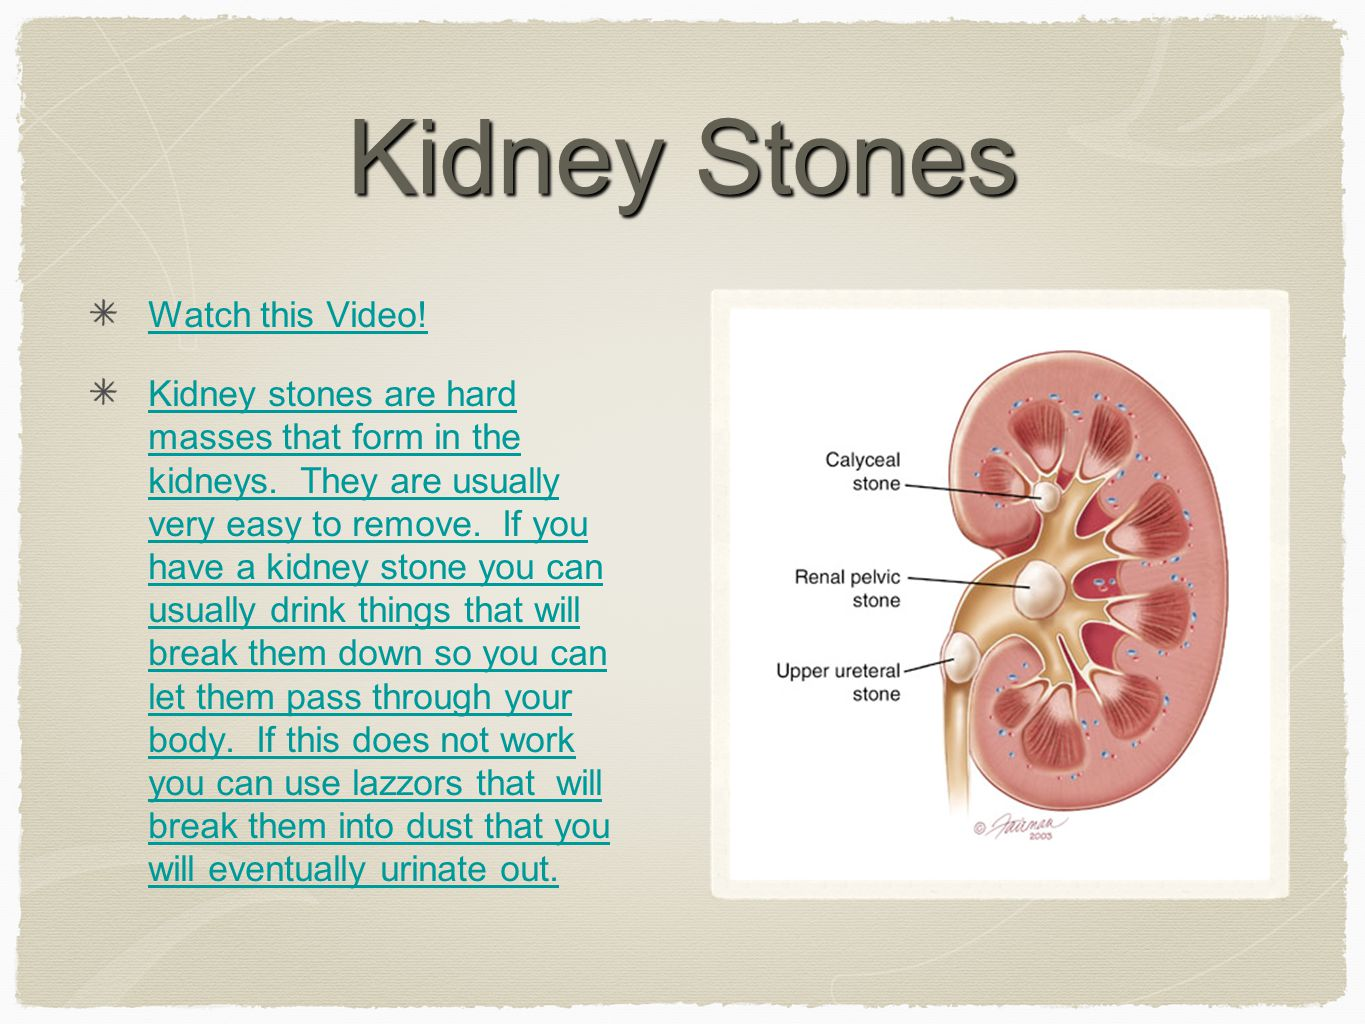 Kidney Stones Watch this Video. Kidney stones are hard masses that form in the kidneys.